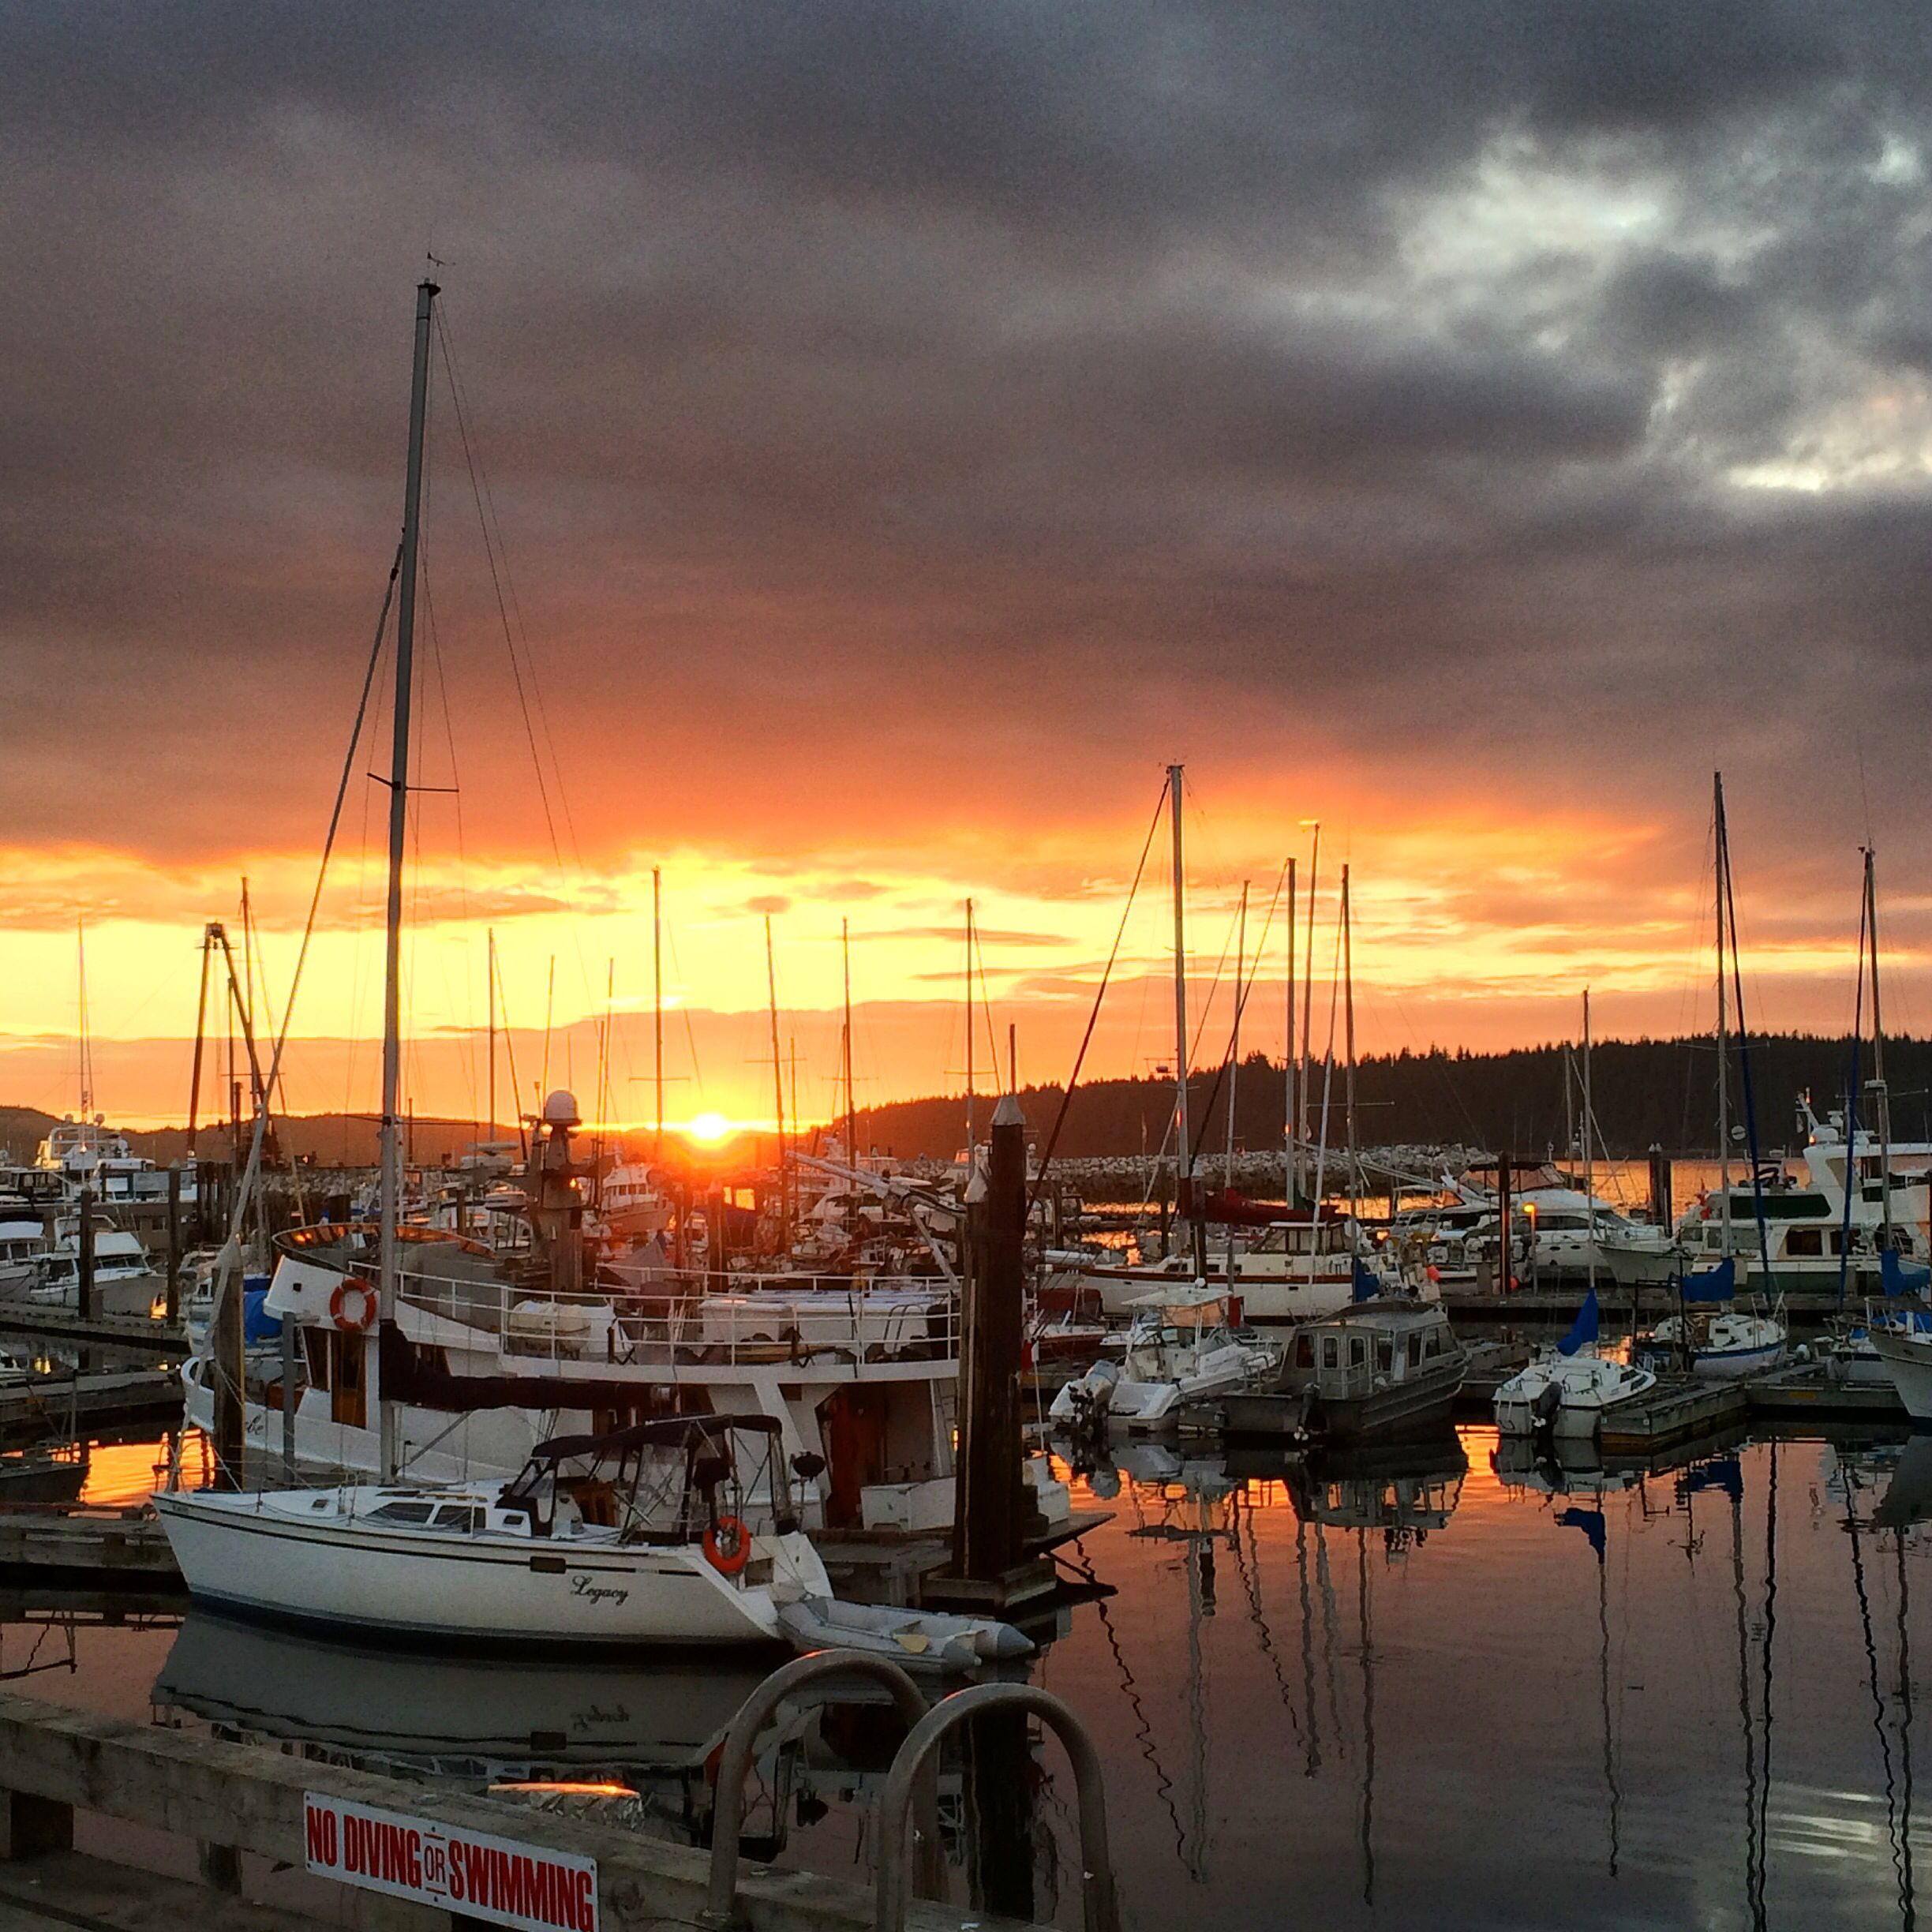 #PortMcNeill #Dock #Boats #BritishColumbia #Sunset #Beauty